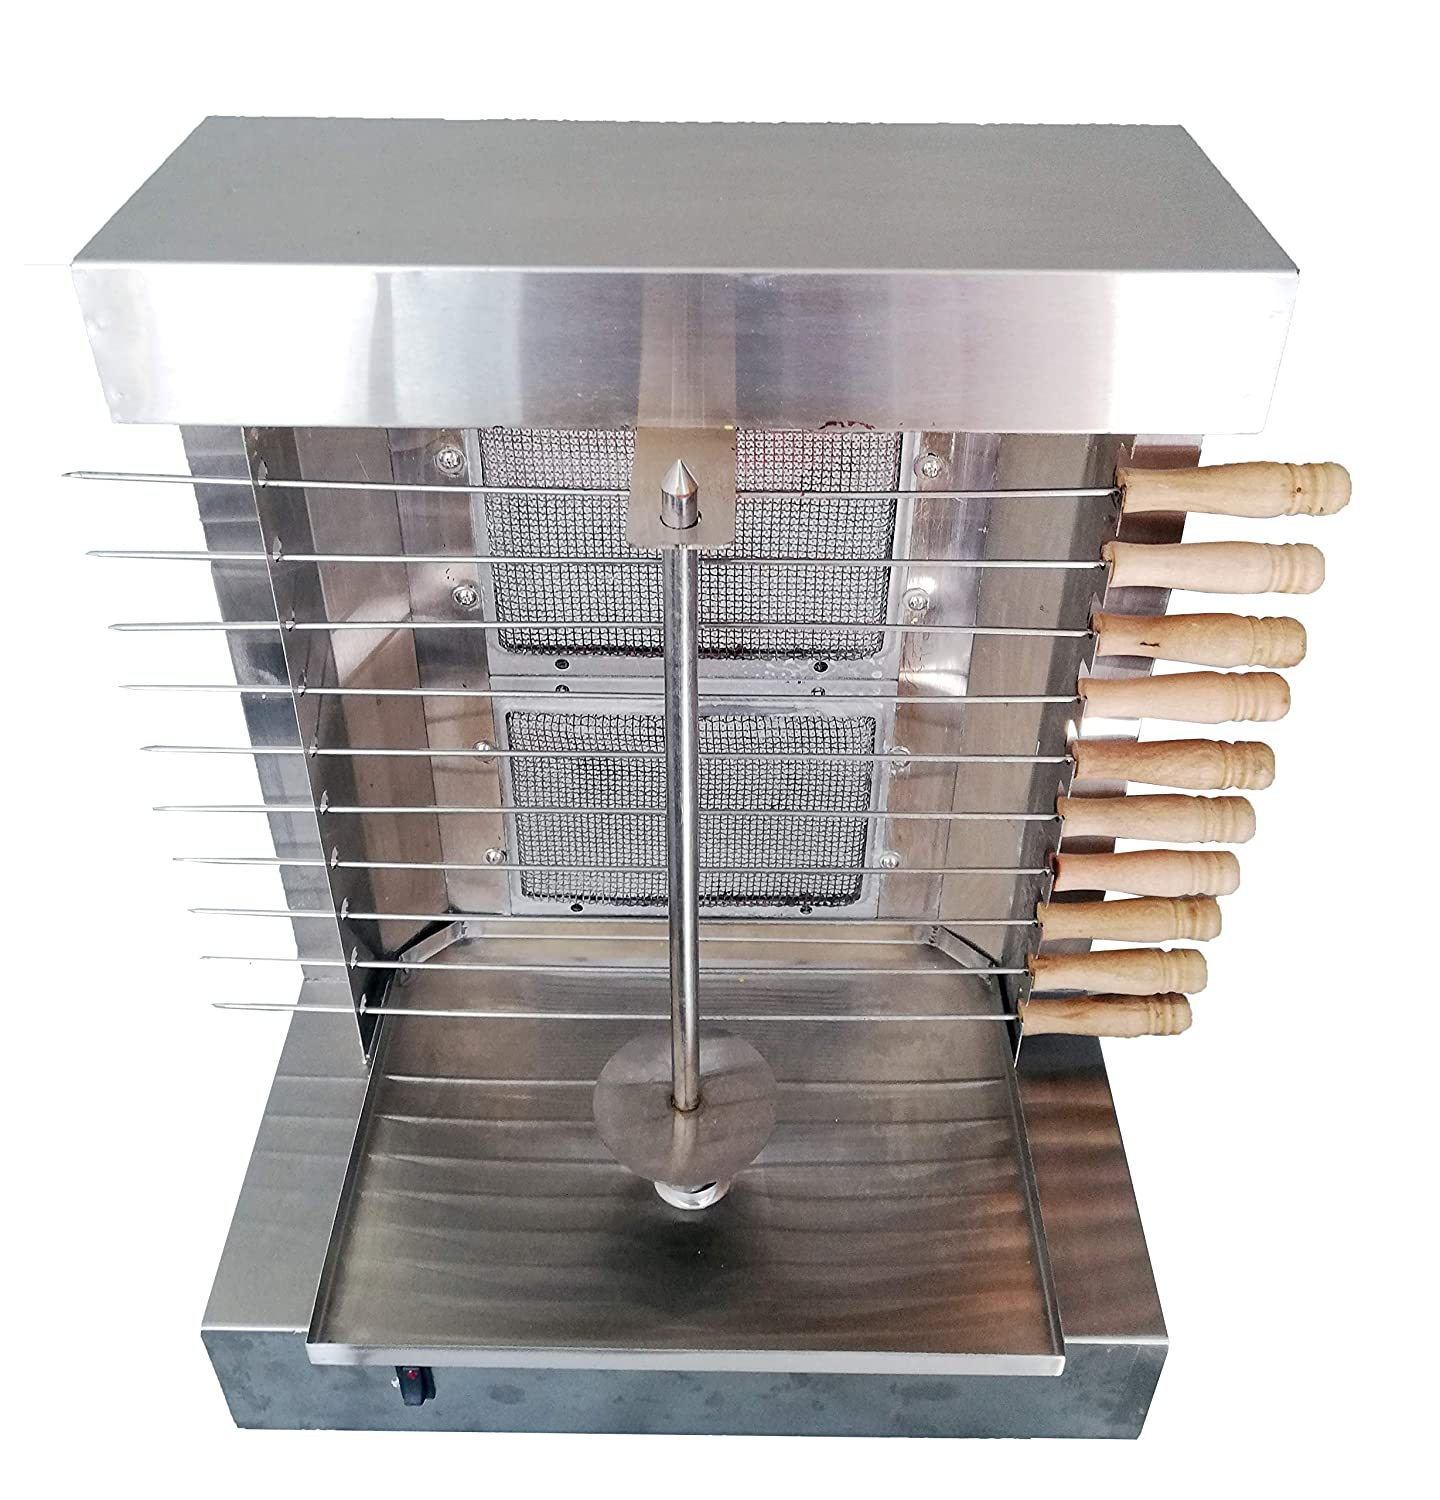 Bioexcel Tacos Al Pastor Doner Kebab Shawarma Gas Burner Grill - Vertical Broiler - Automatic 2 Burners Machine with 10 Side Kebab Skewers Burners Propane Gas